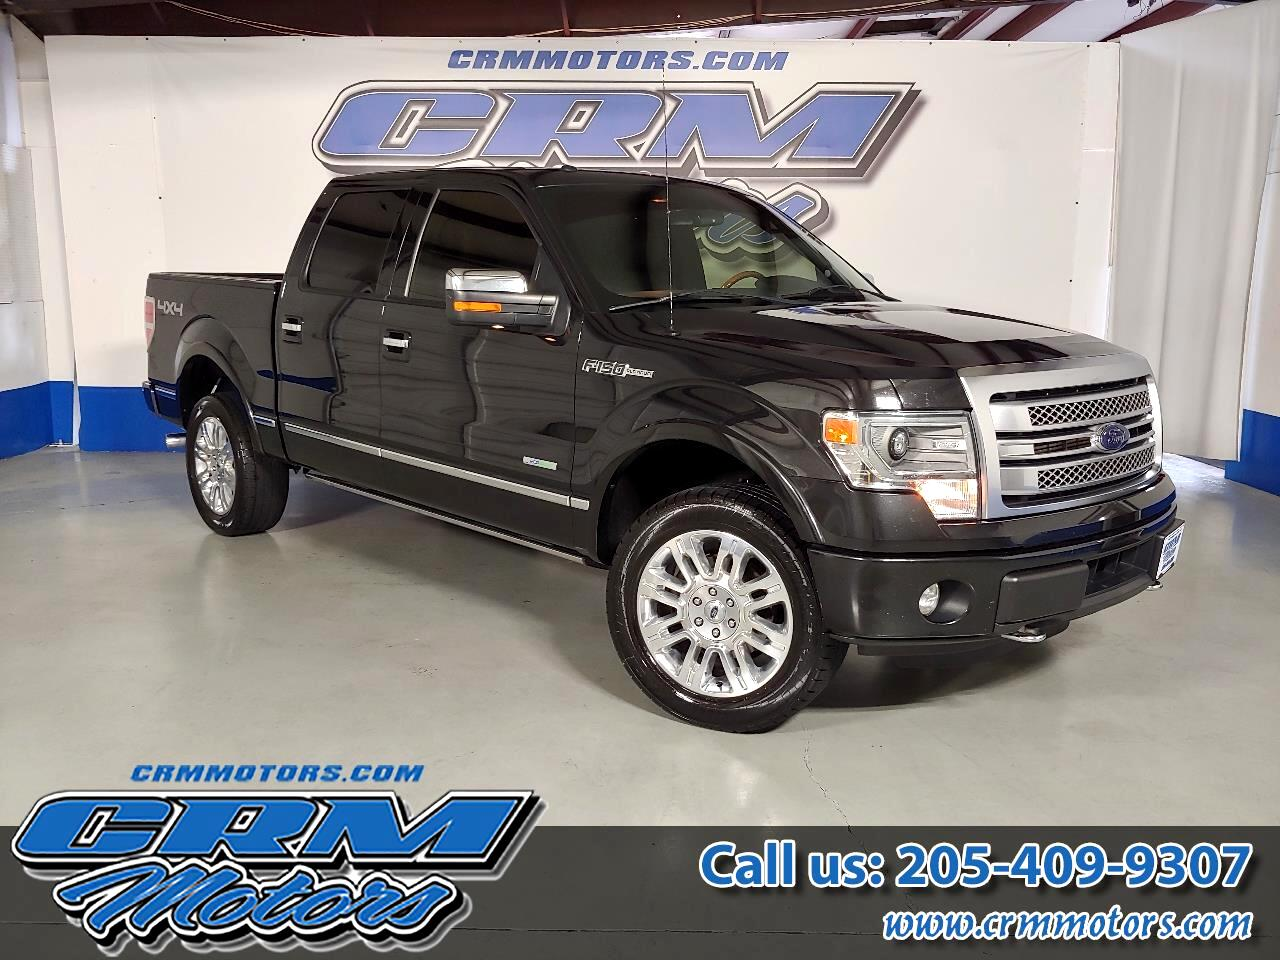 2014 Ford F-150 4WD SUPERCREW PLATINUM EDITION!